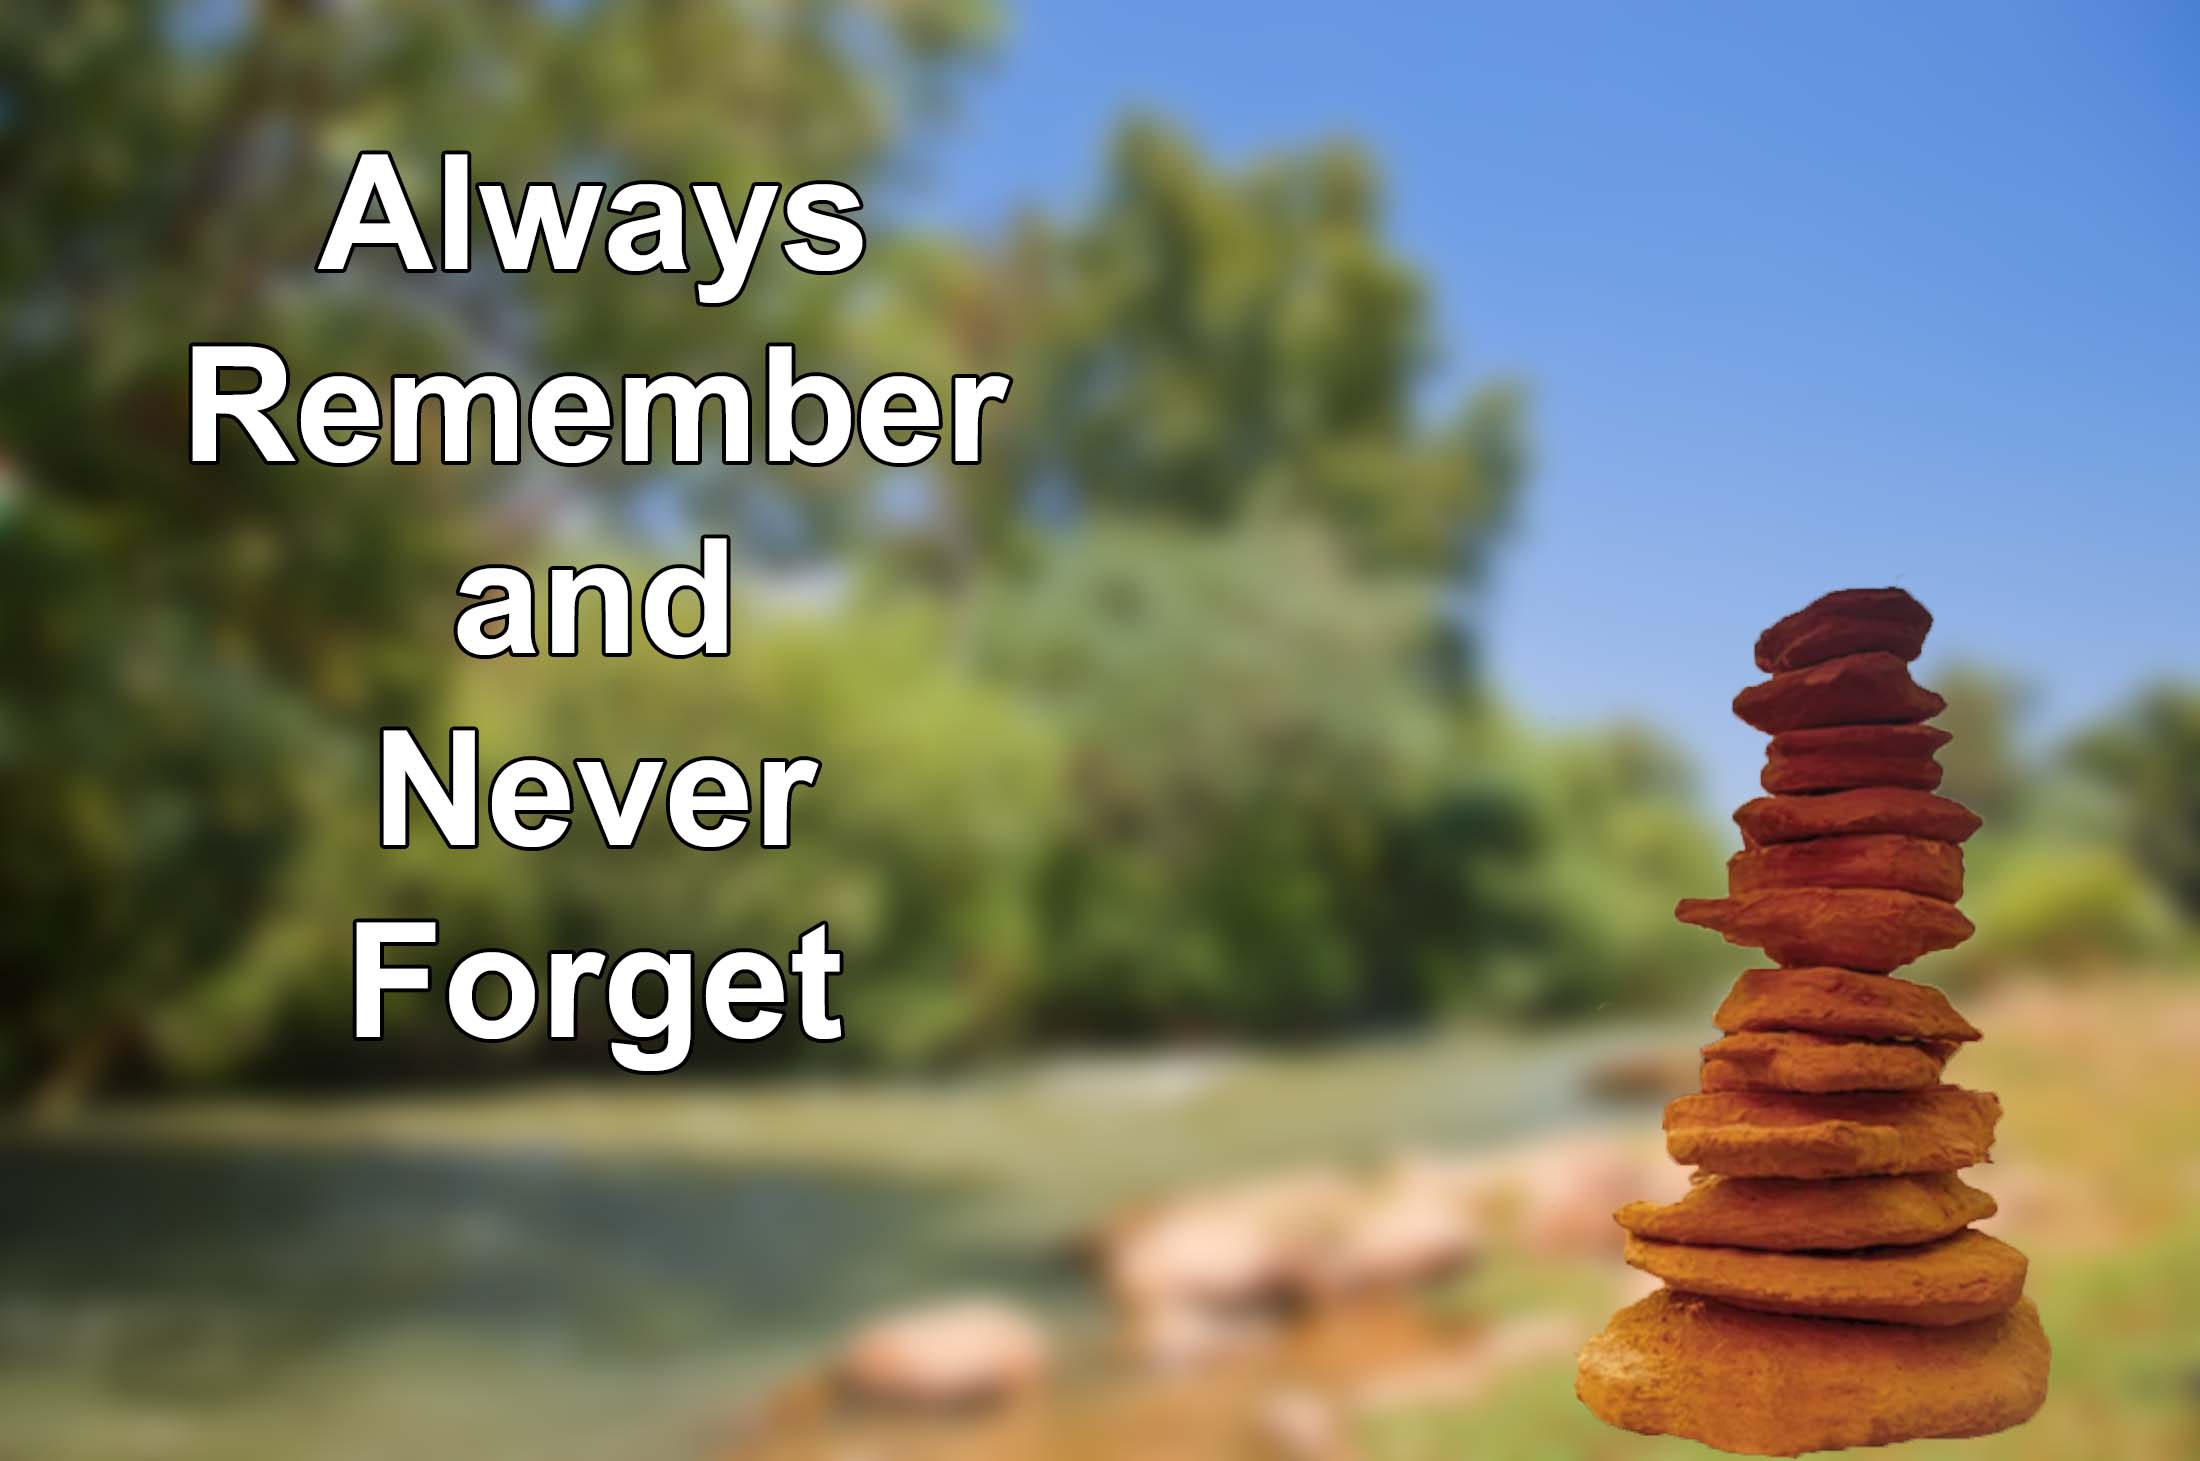 Always Remember and Never Forget